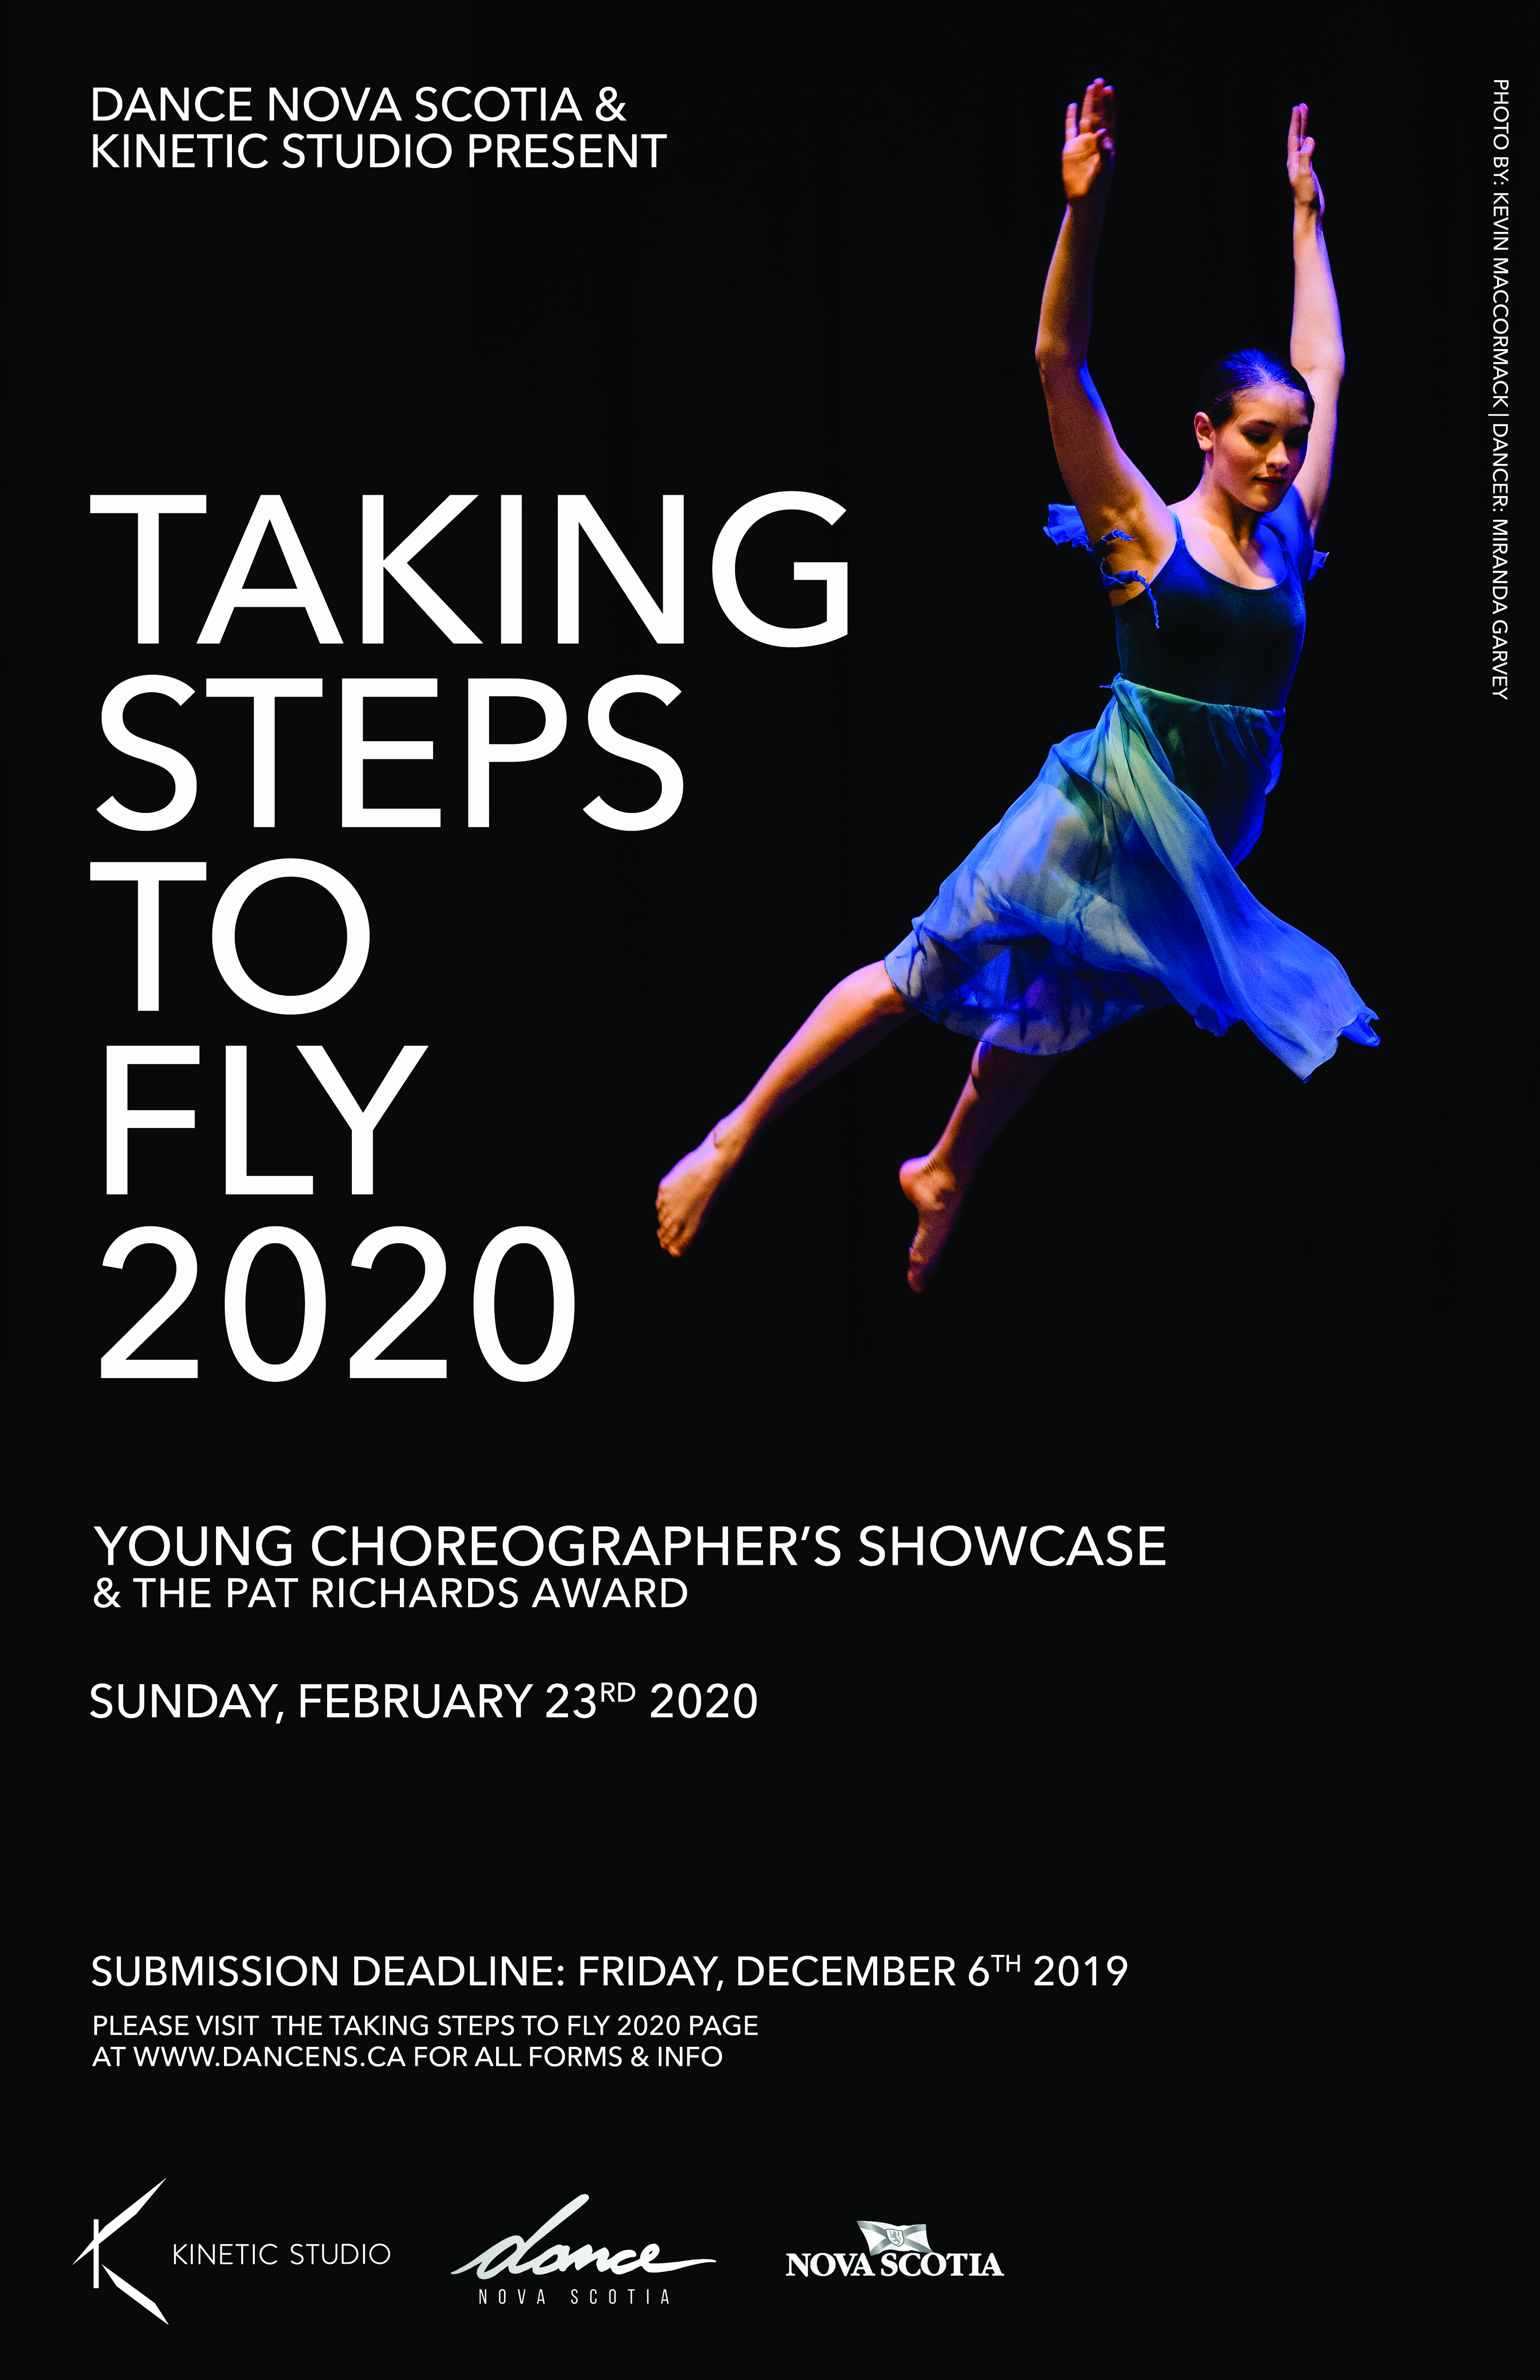 New Dance Moves 2020.Taking Steps To Fly 2020 Dance Nova Scotia